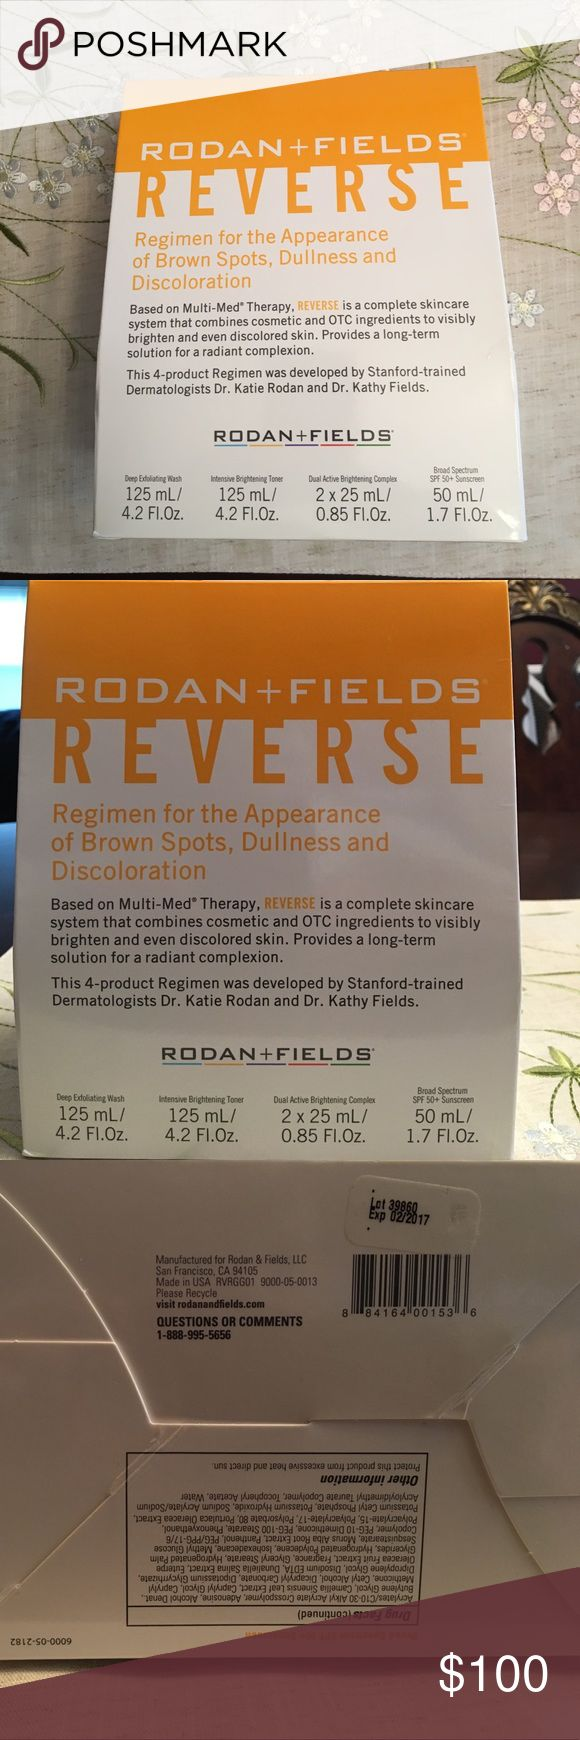 "Rodan and Fields Reverse Skincare System ""Reverse"" 4 piece regimen will visibly brighten and even discolored skin. It has never been used and is sealed. I got auto shipments but developed rosacea (NOT caused by these products) and I am now on a prescription rosacea medication and can no longer use these. I was hoping to be able to use it someday but my rosacea is too severe. The kit does have an expiration date of 2/2017 which is why I'm selling it at a discount. I'm sure the ingredients are…"